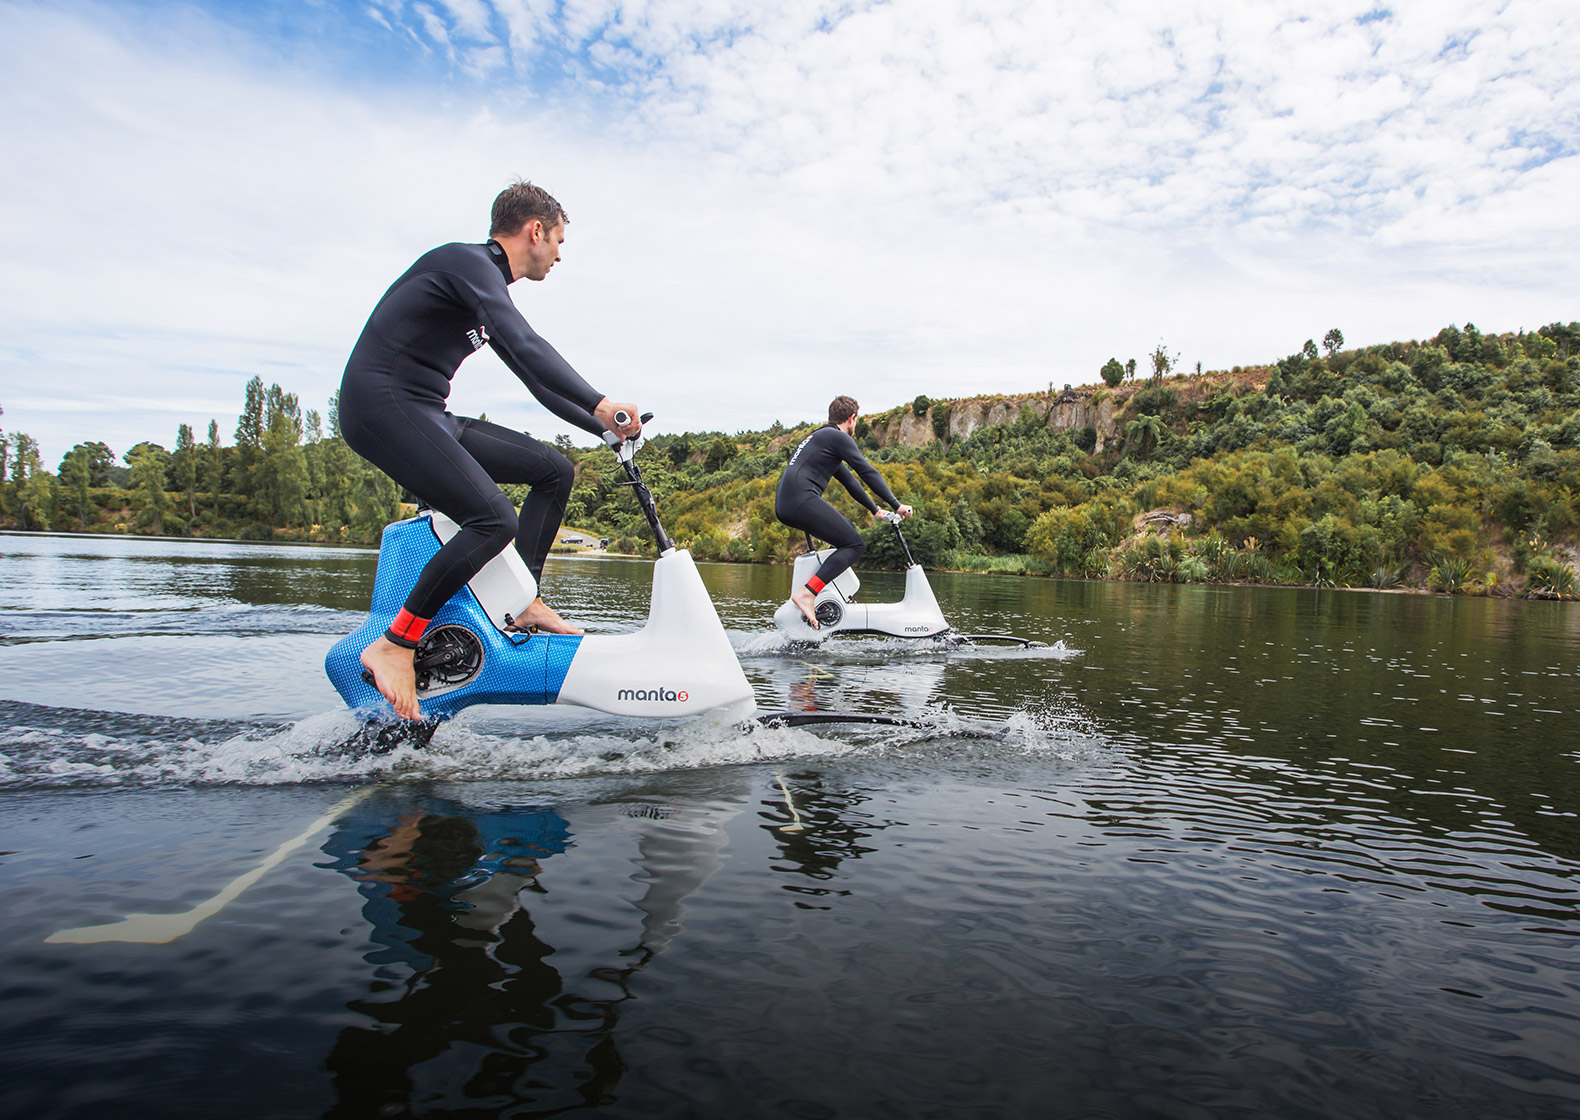 Manta5's new electric water bike lets you cycle on rivers and lakes